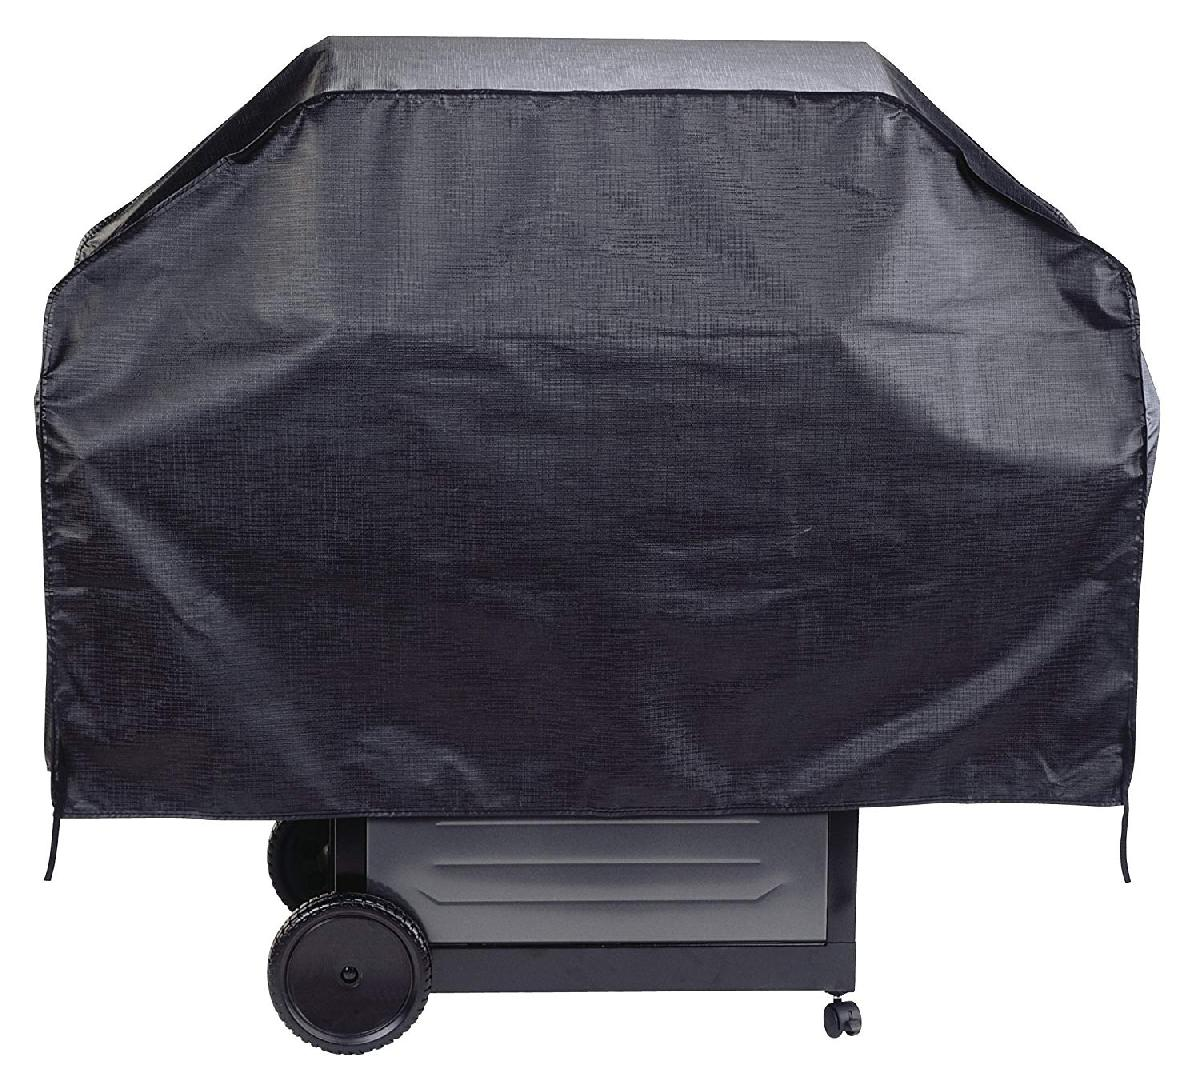 60 INCH BBQ GRILL COVER